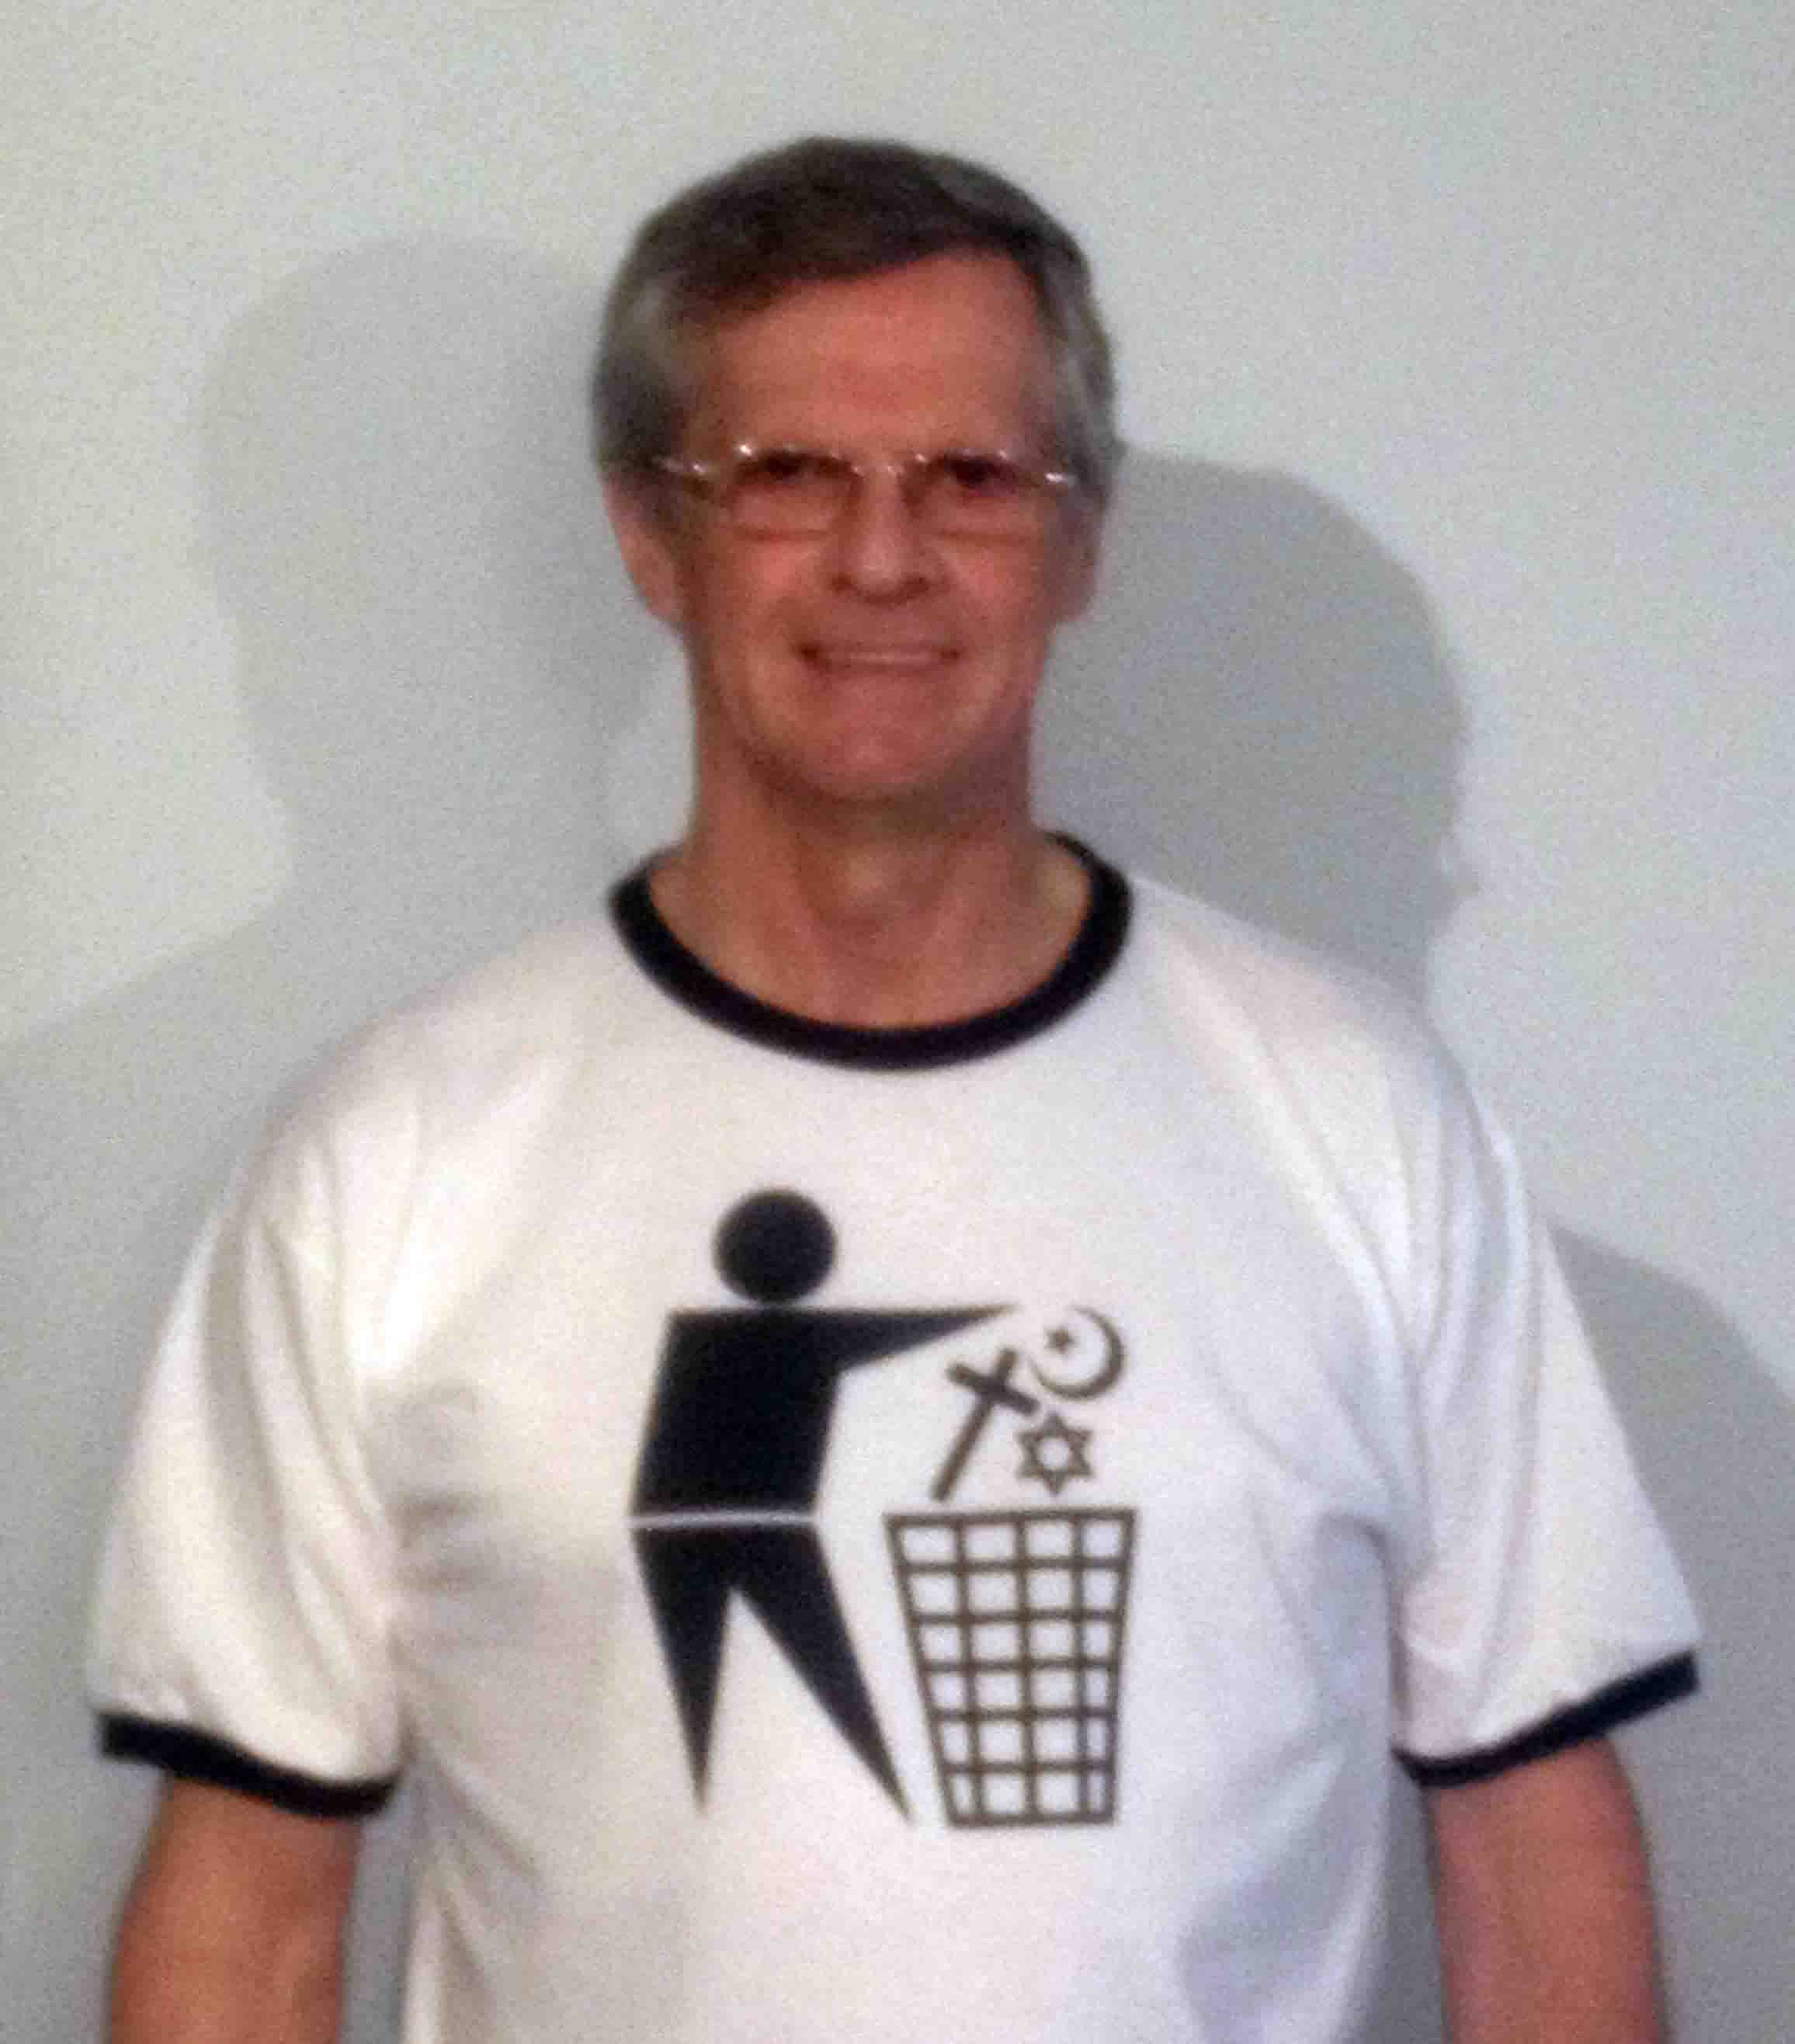 Darwin Bedford wearing a T-shirt depicting the international symbol for a wastes container with religious symbols in place of the wastes.